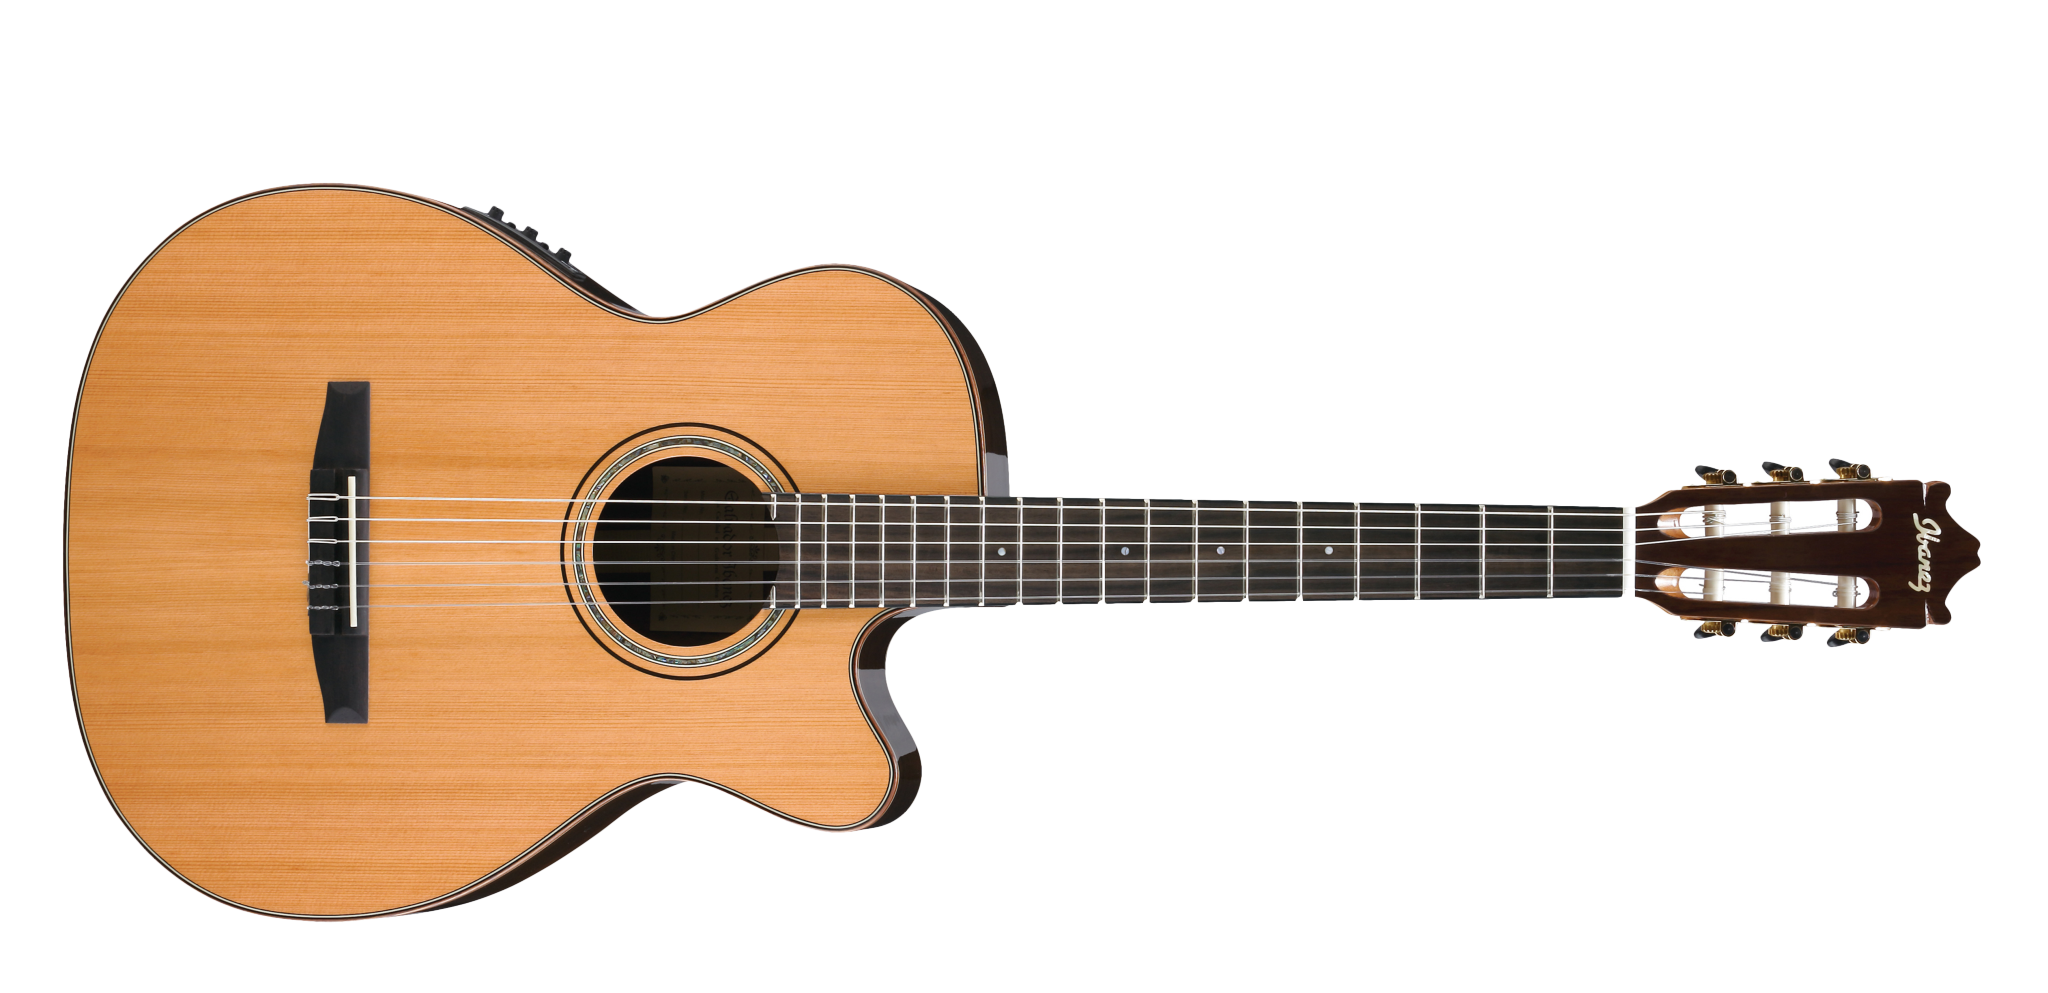 Get Guitar Png Pictures image #46313